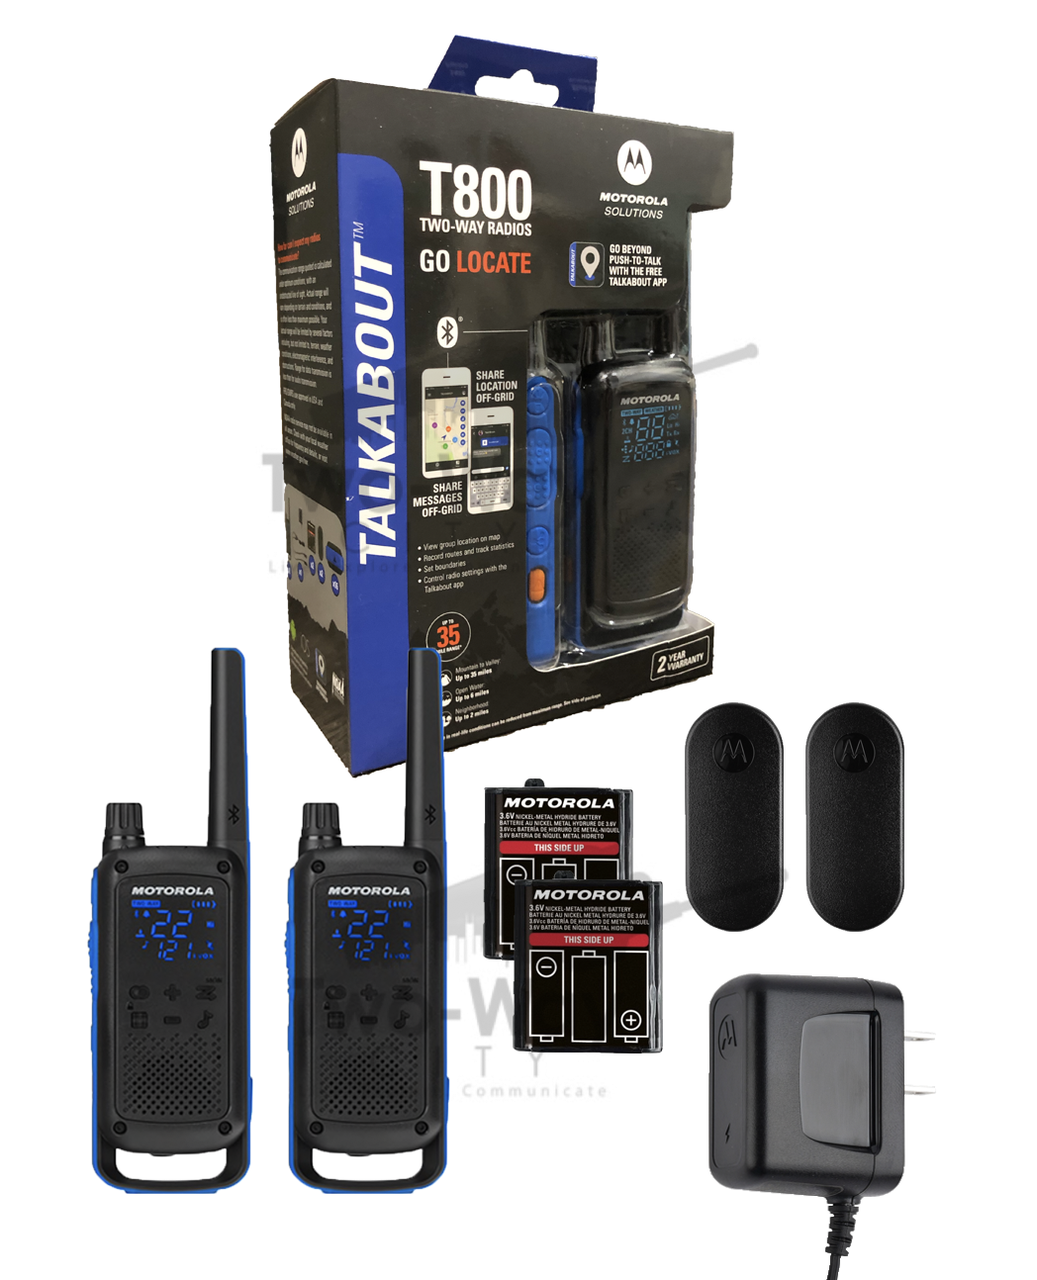 Motorola TALKABOUT T800 Two-Way Radio / Walkie Talkie